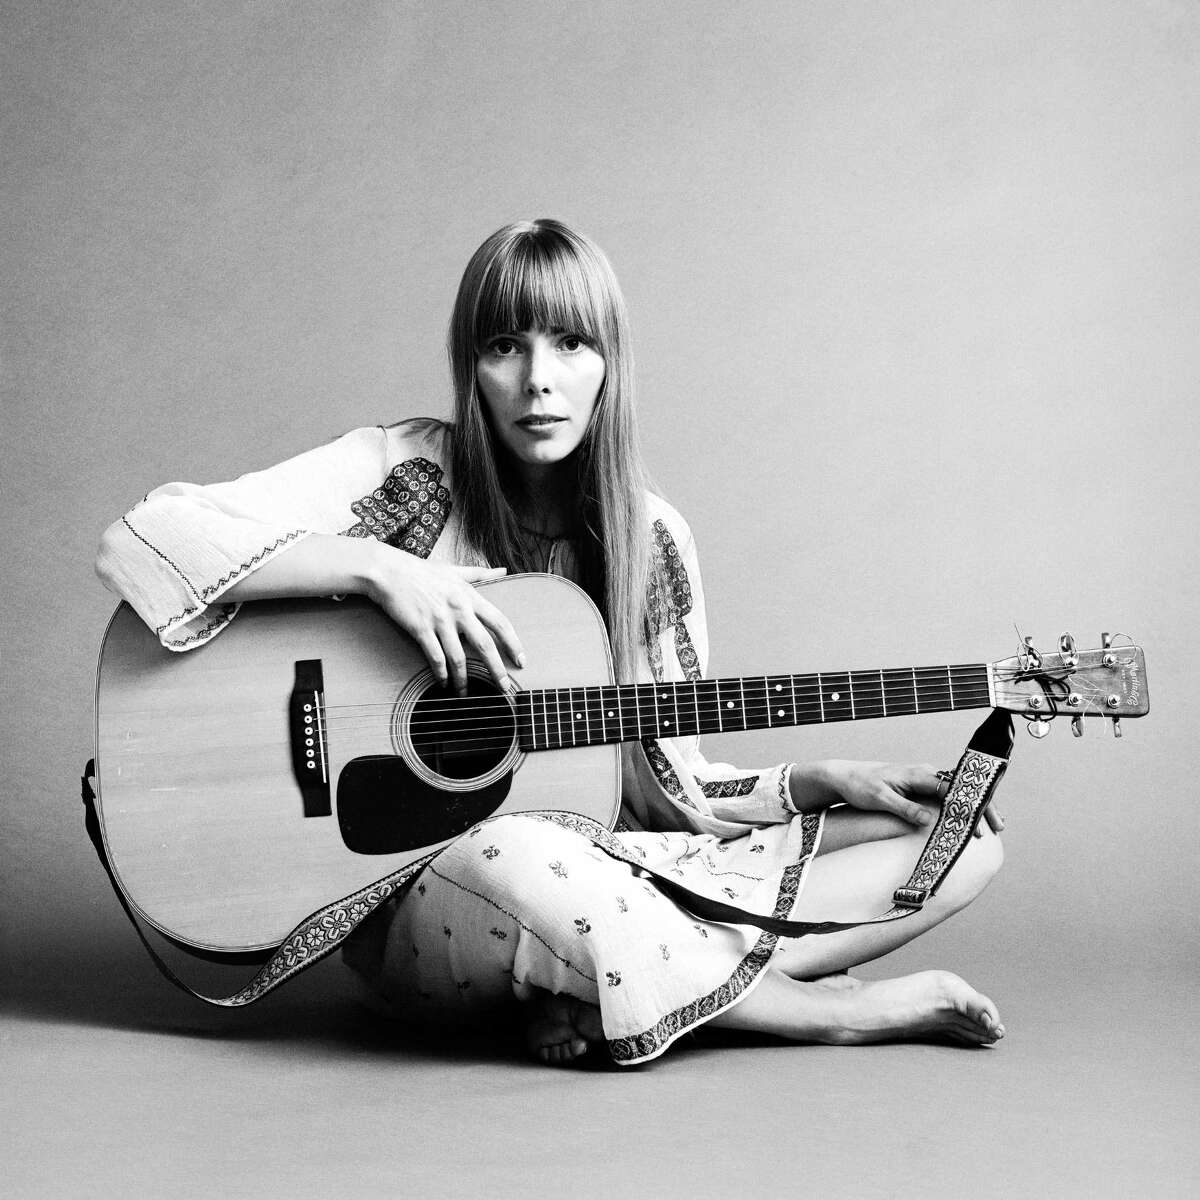 20th November 1968: Portrait of American musician Joni Mitchell seated on the floor with her acoustic guitar in her lap. This image was from a shoot for the fashion magazine Vogue. Mitchell wears a white cotton dress.